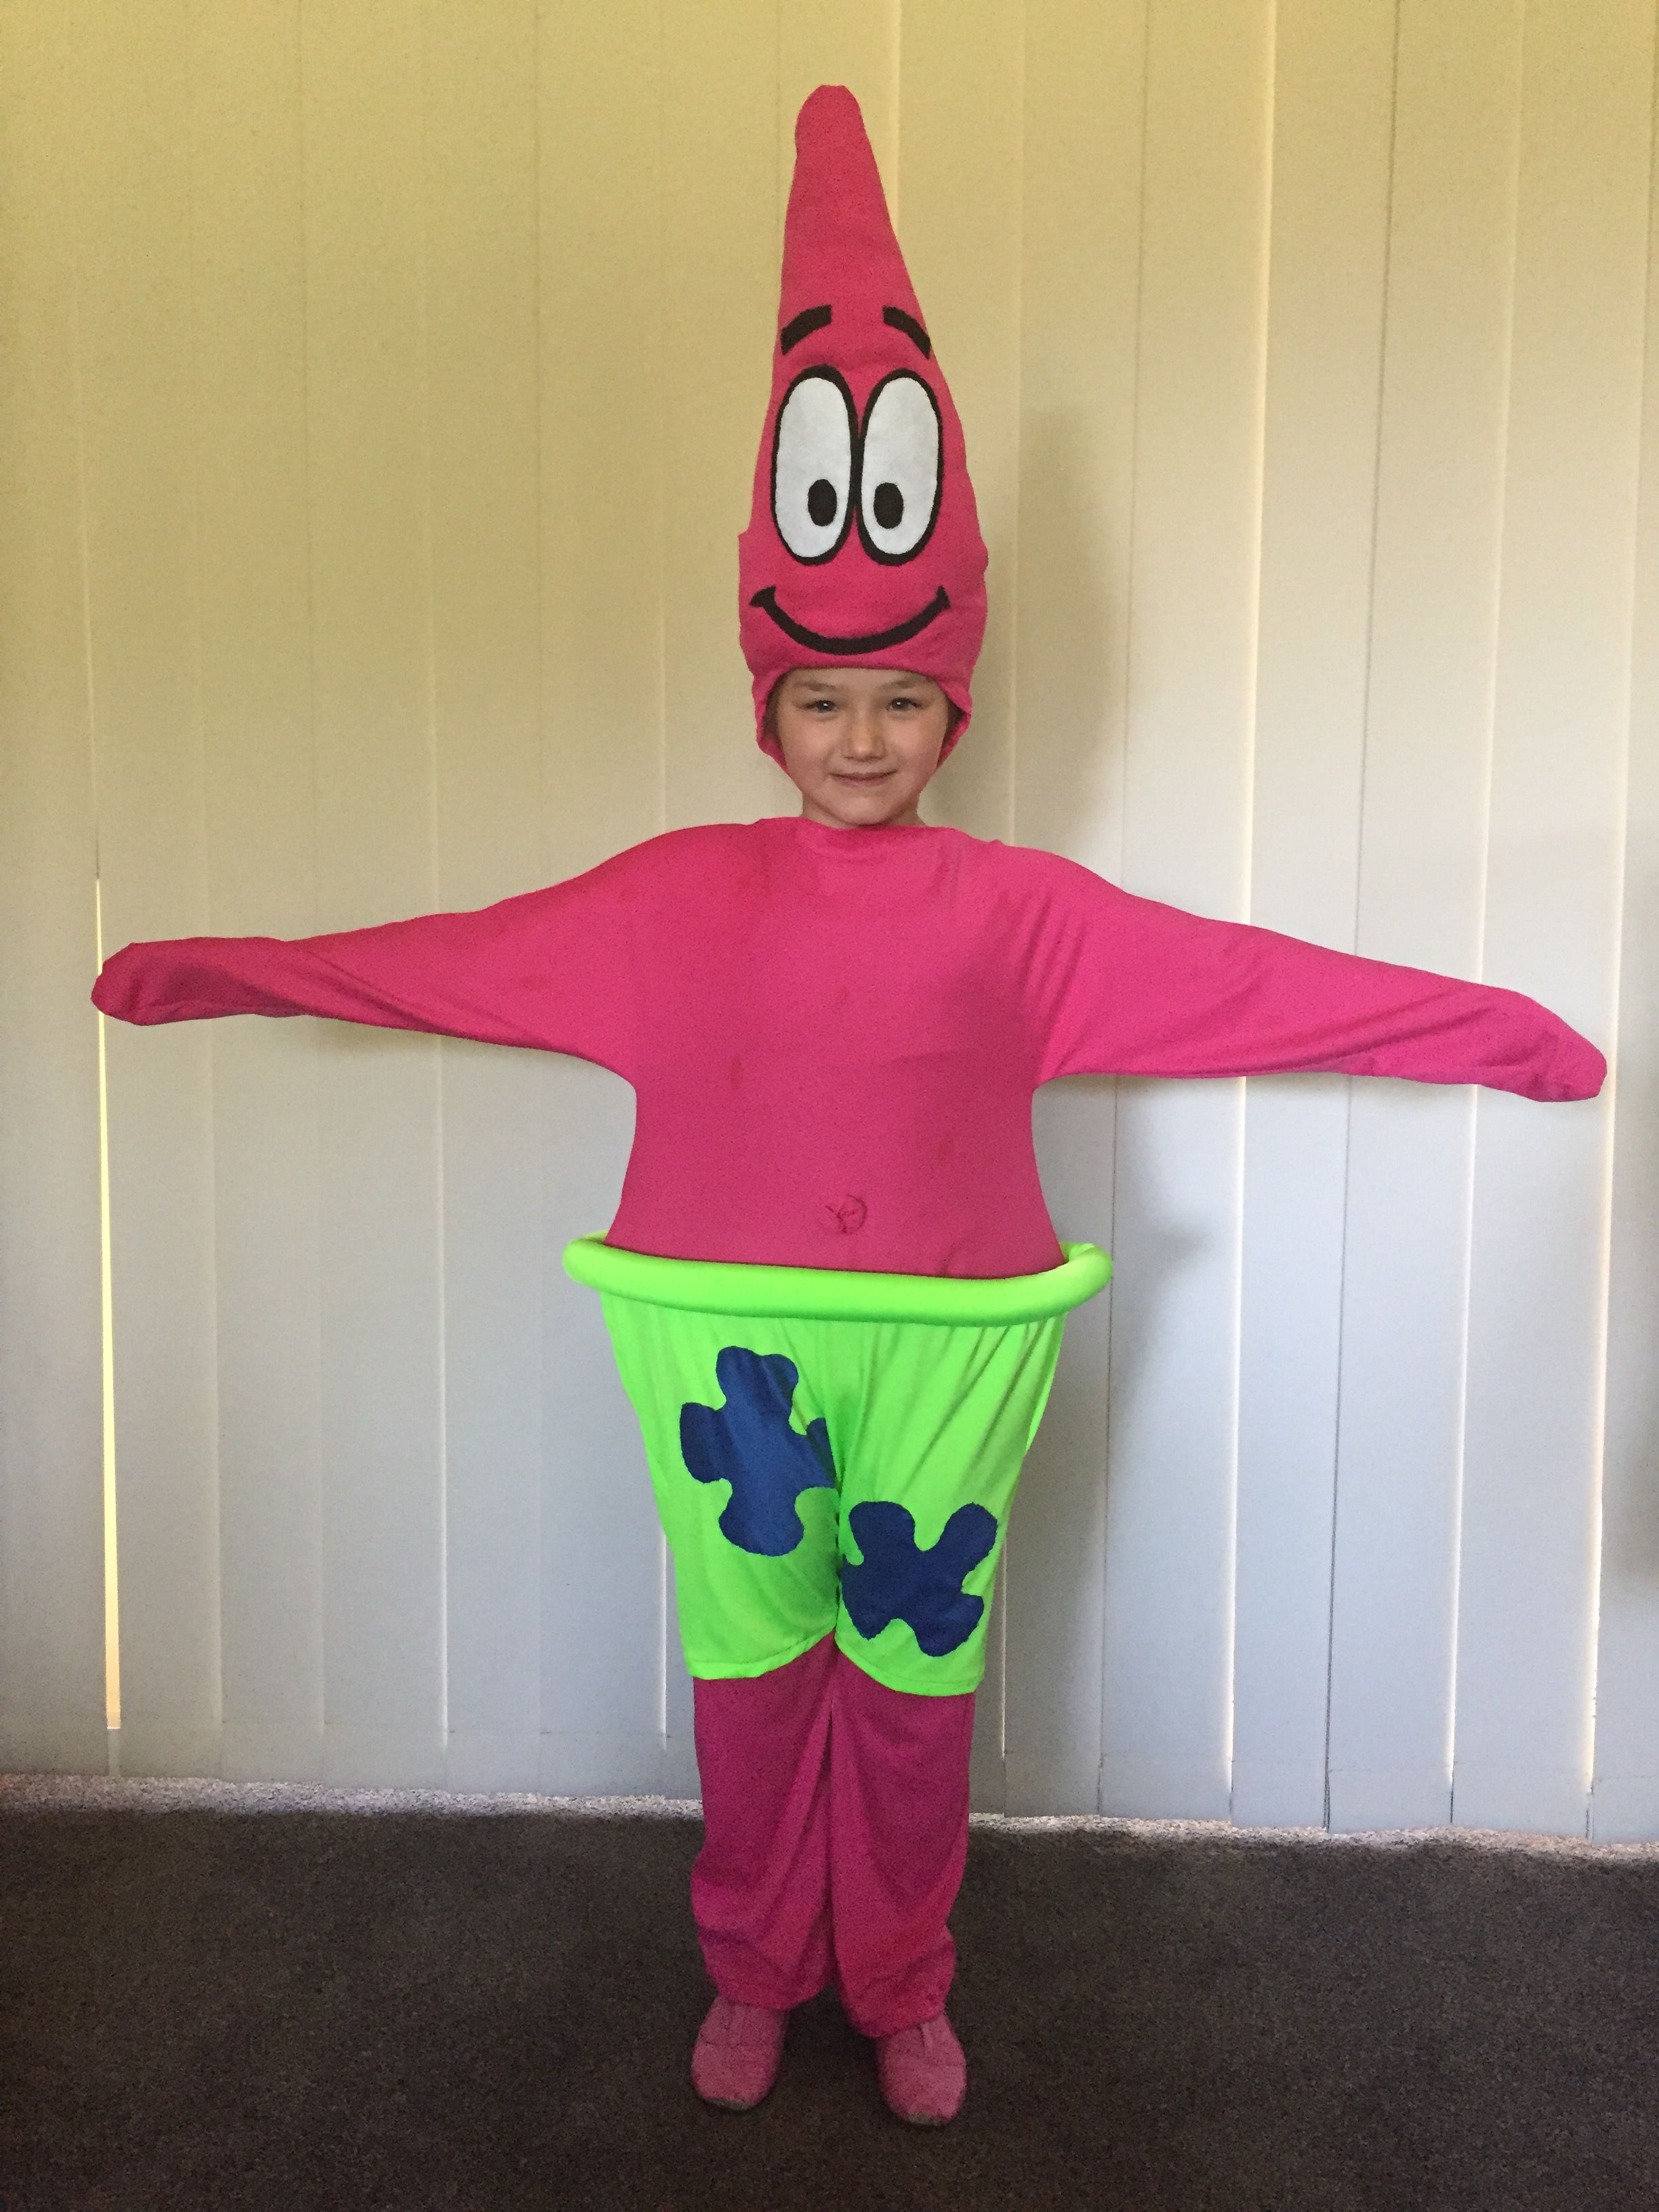 patrick spongebob costume diy also random spongebob